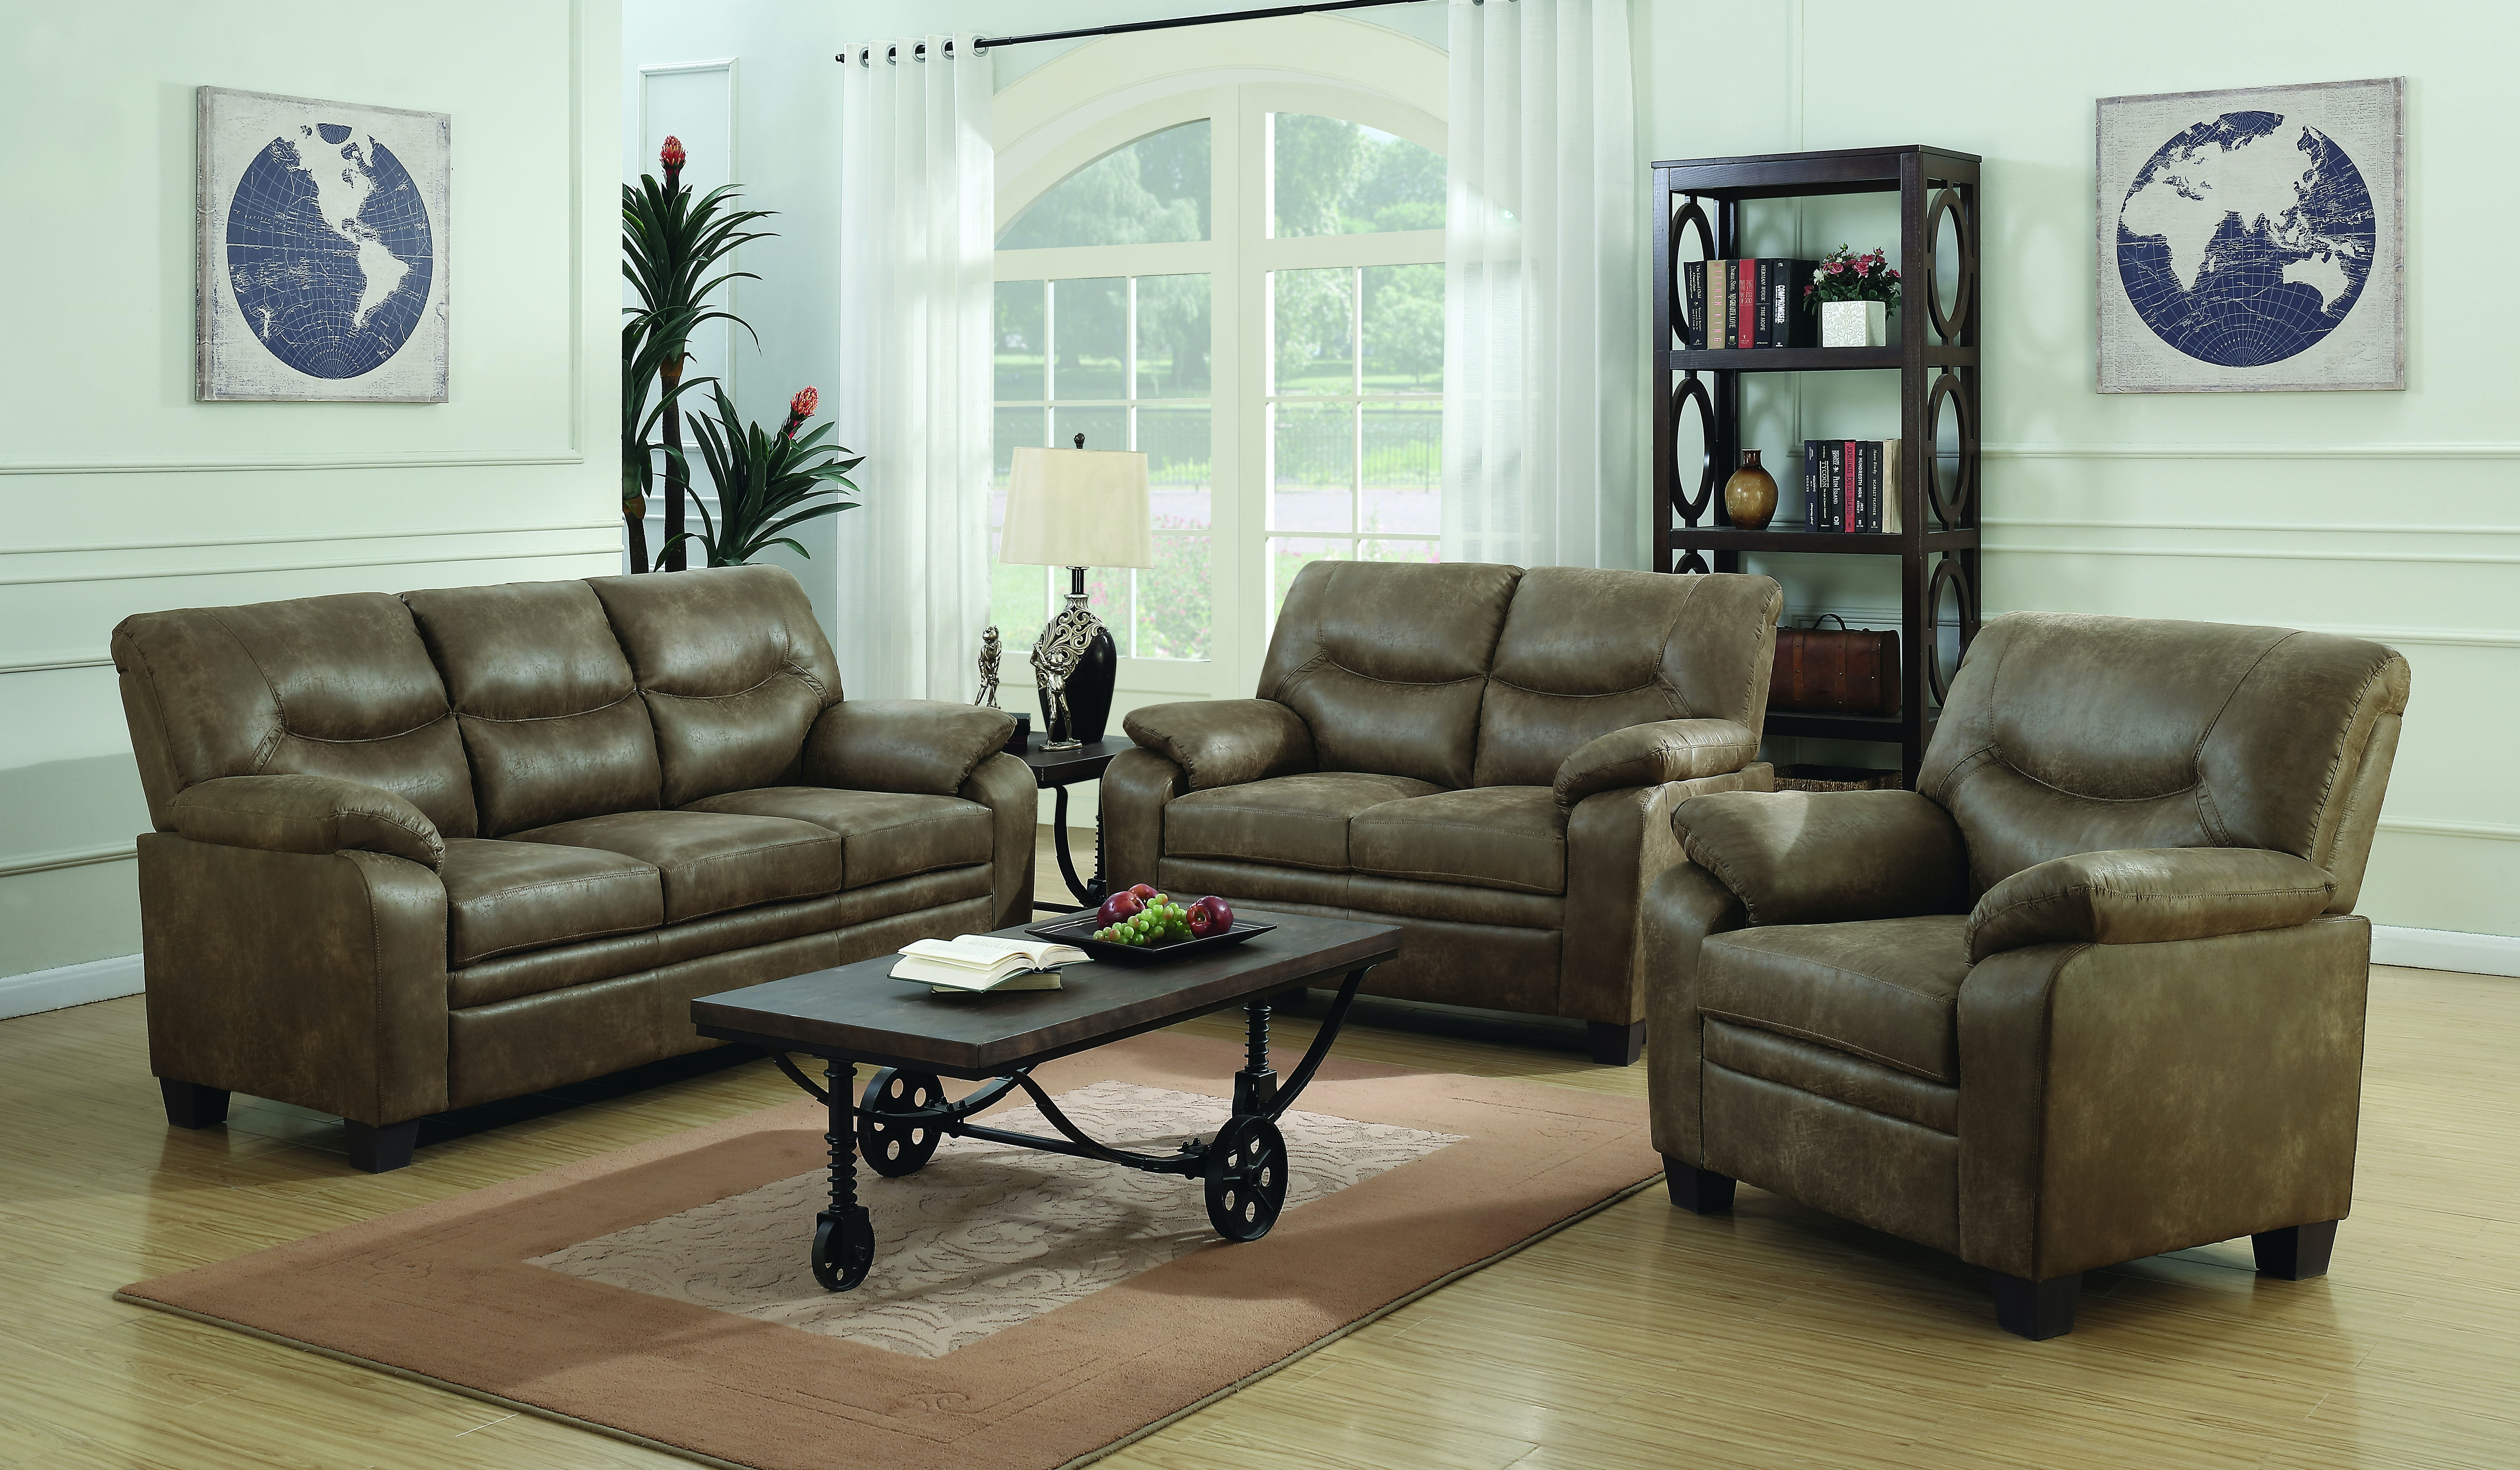 Coaster Living Room Sofa 506561 At China Towne Furniture